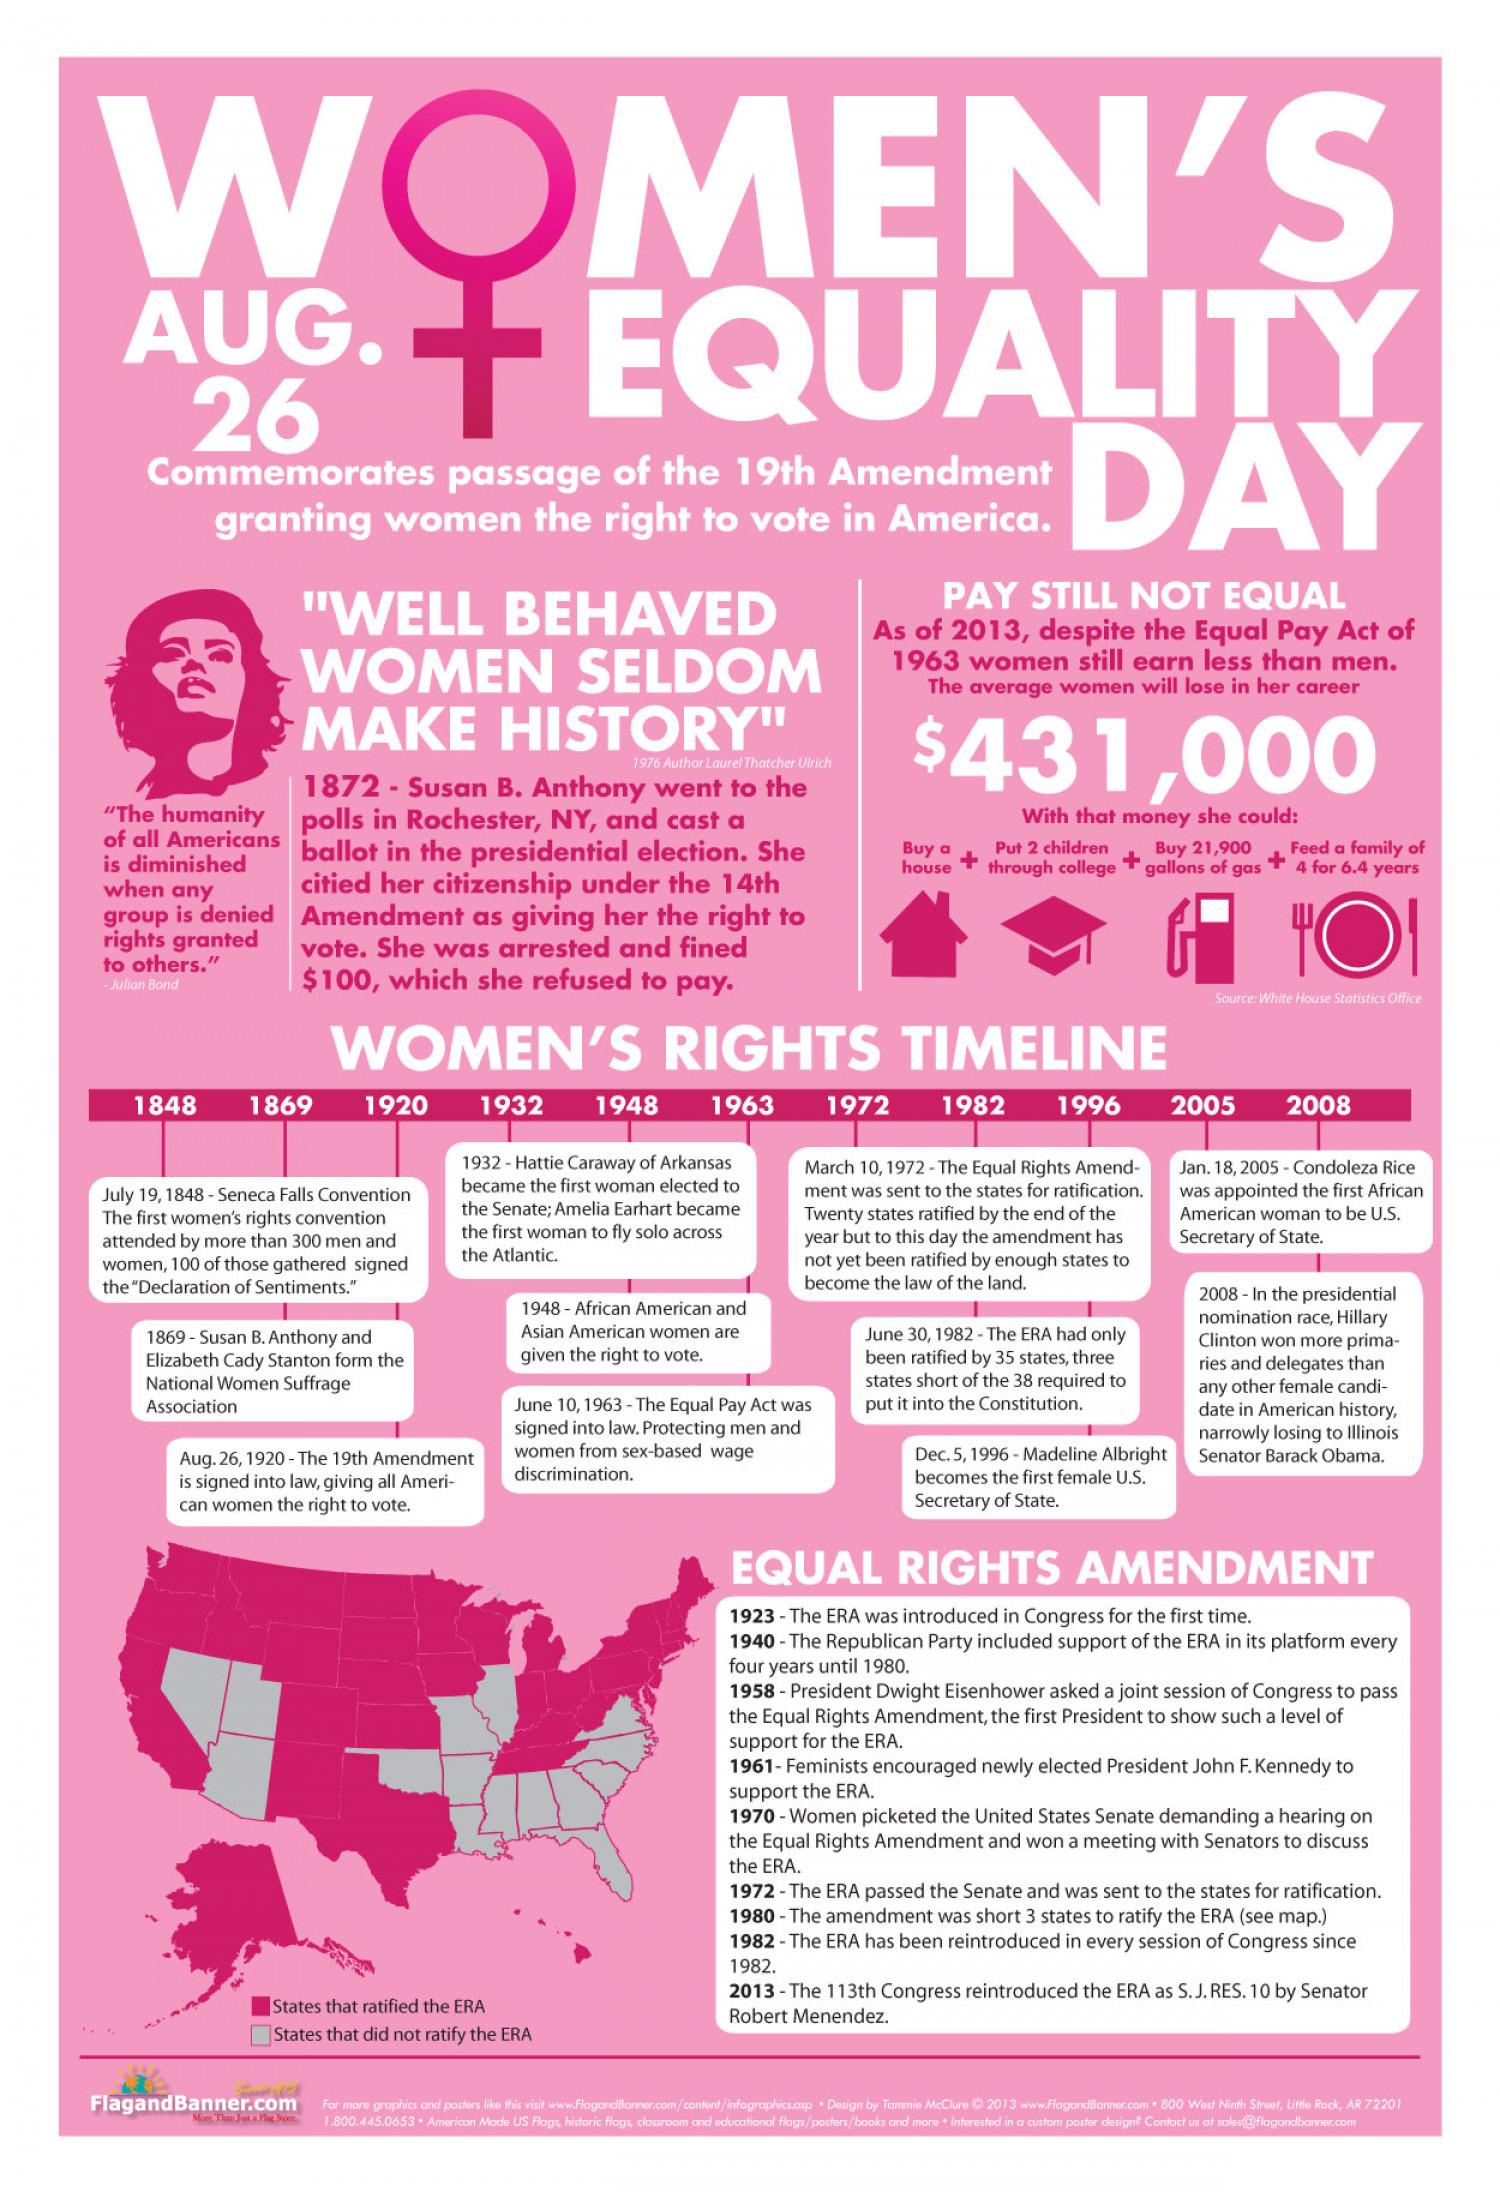 Women's Equality Day Infographic - timeline and map with facts about the women's rights movement